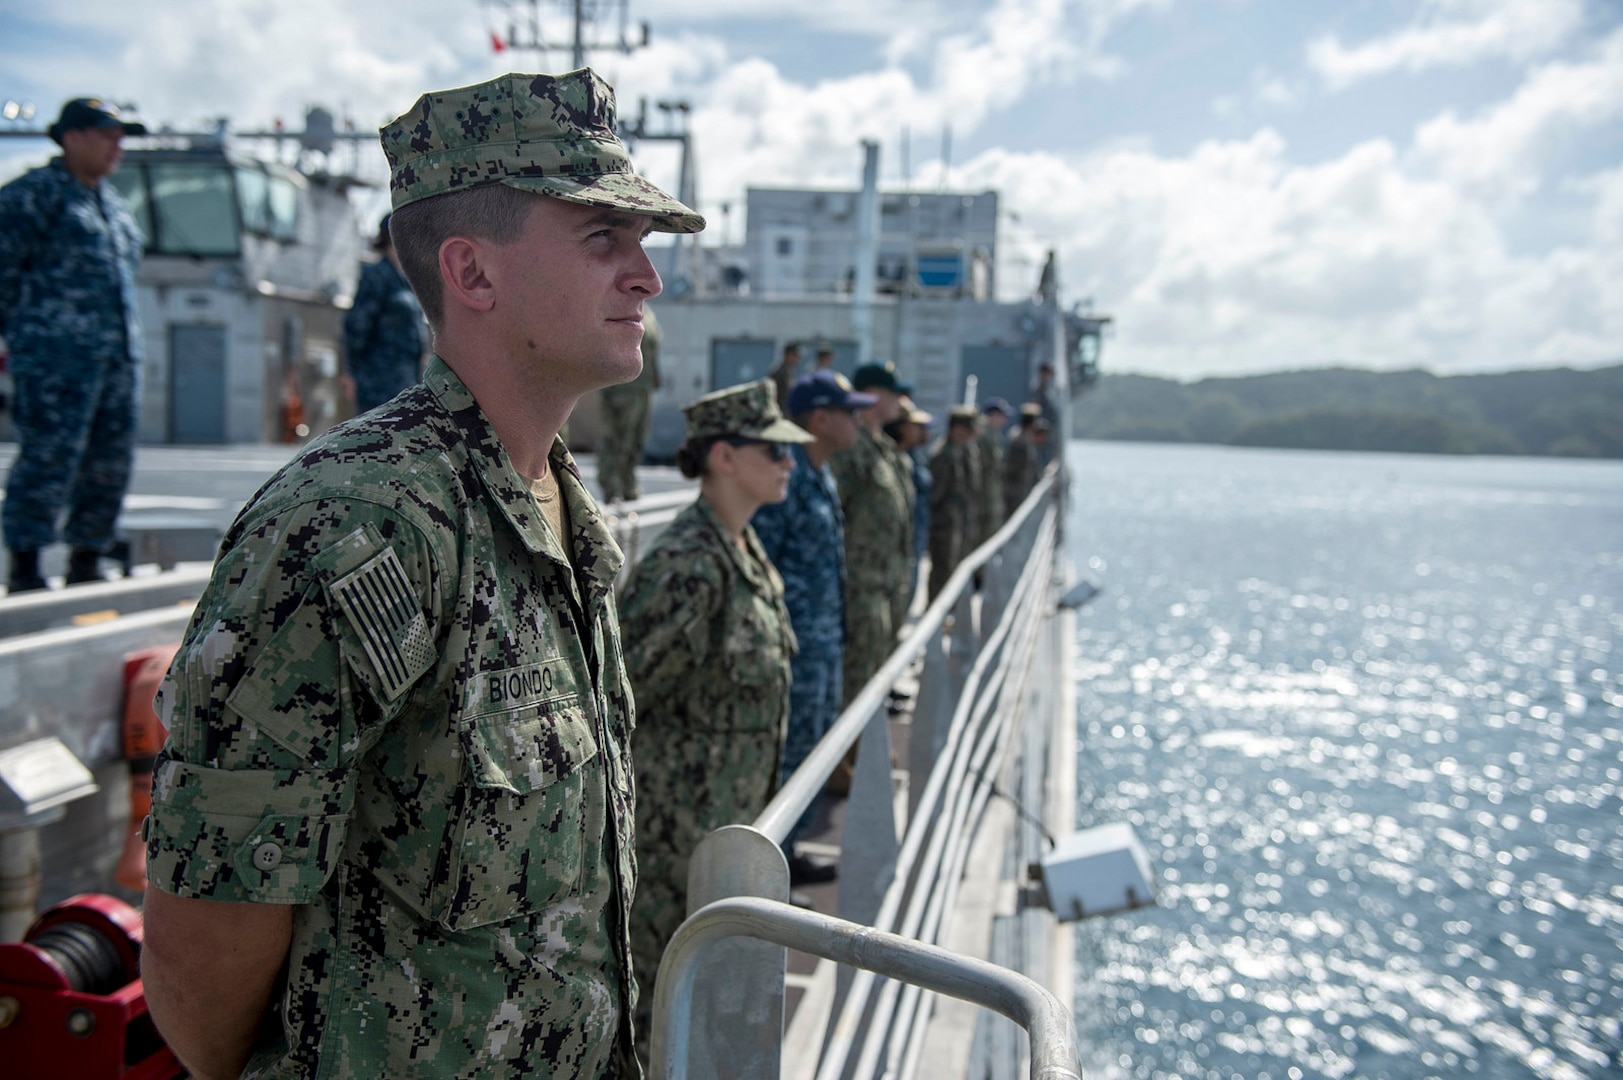 Pacific Partnership 2018 mission begins in Palau